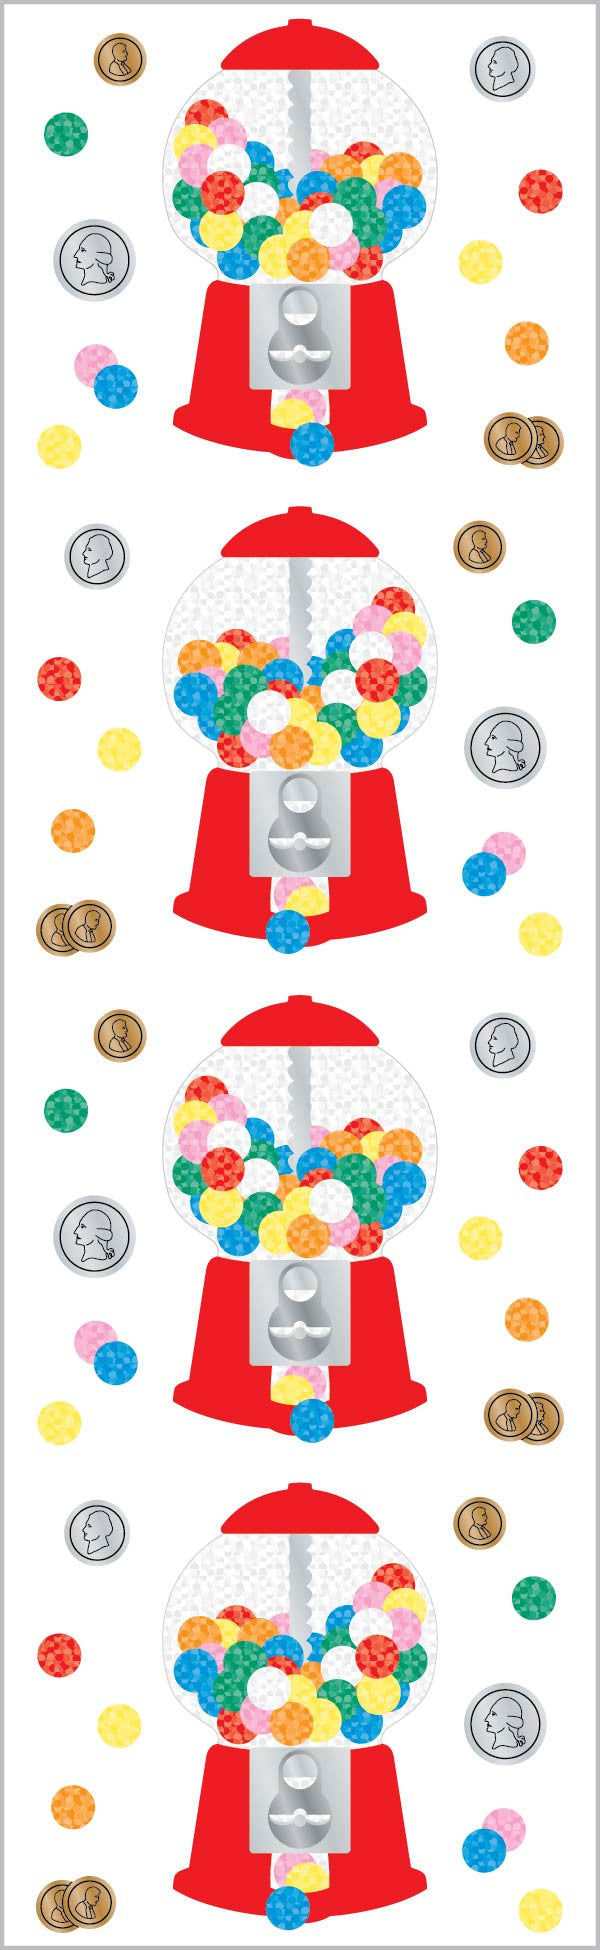 Gumball Machine Stickers - Mrs. Grossman's